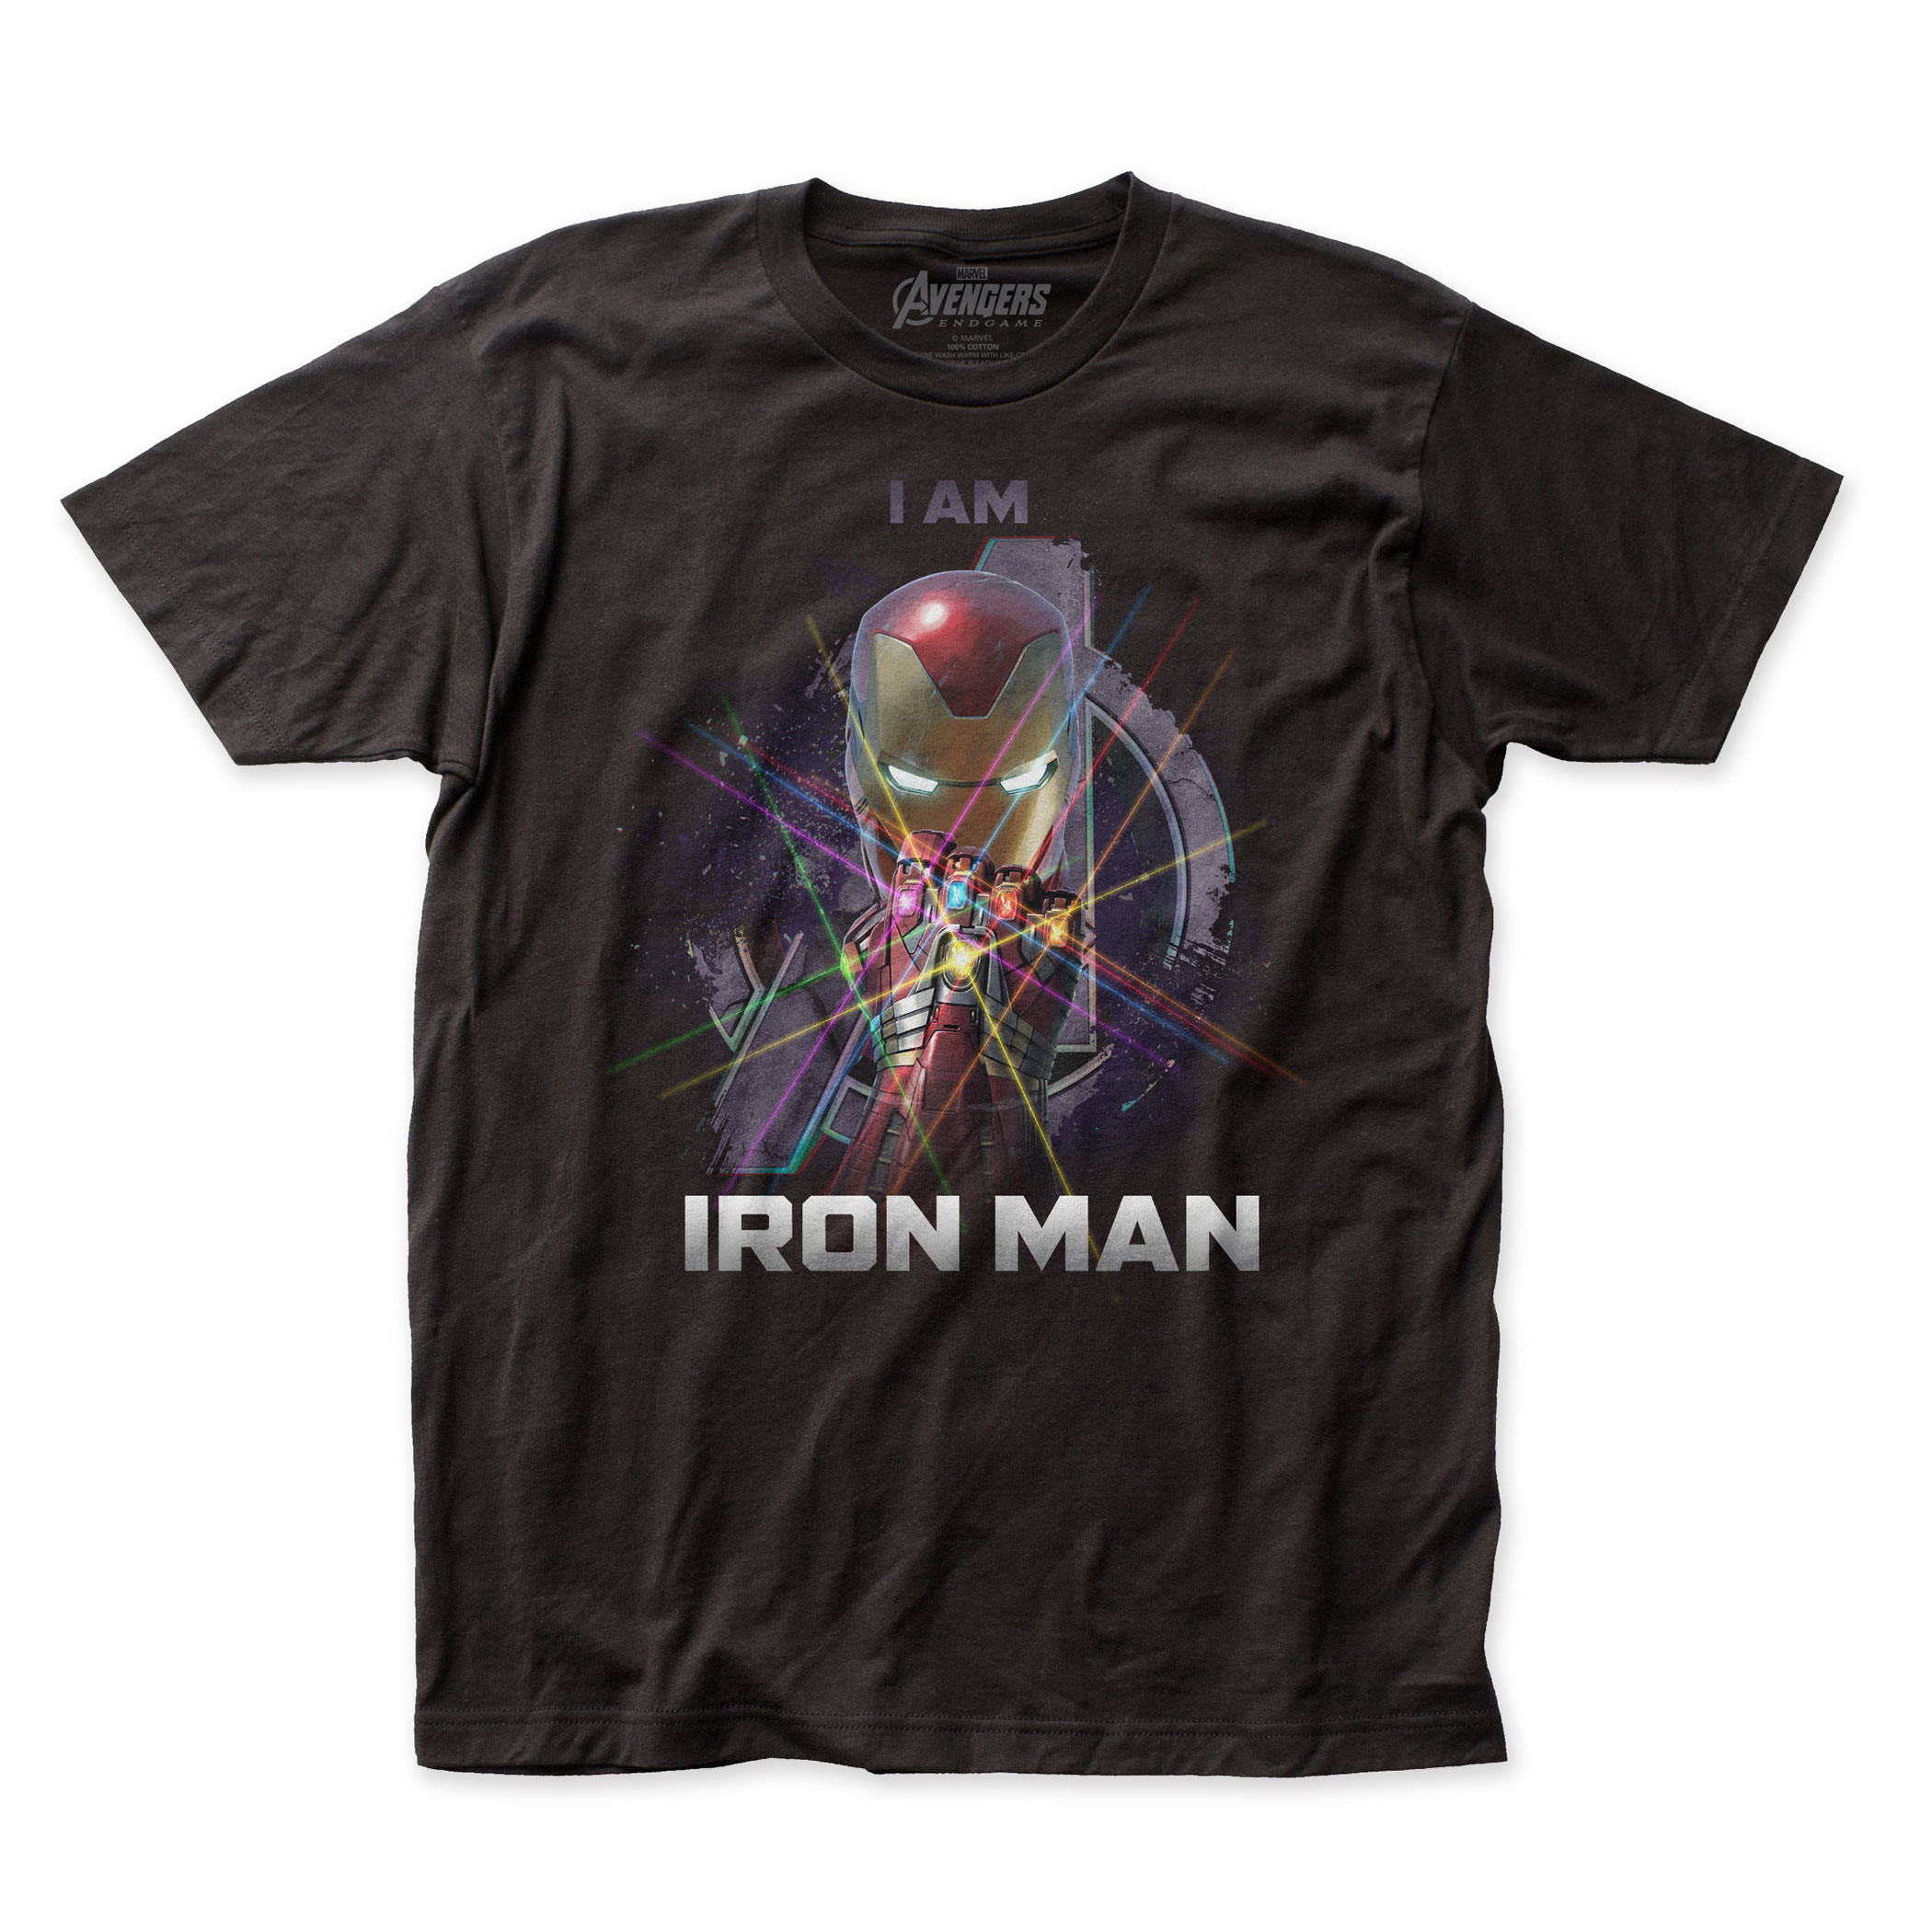 I Am Iron Man Avengers Endgame T-Shirt